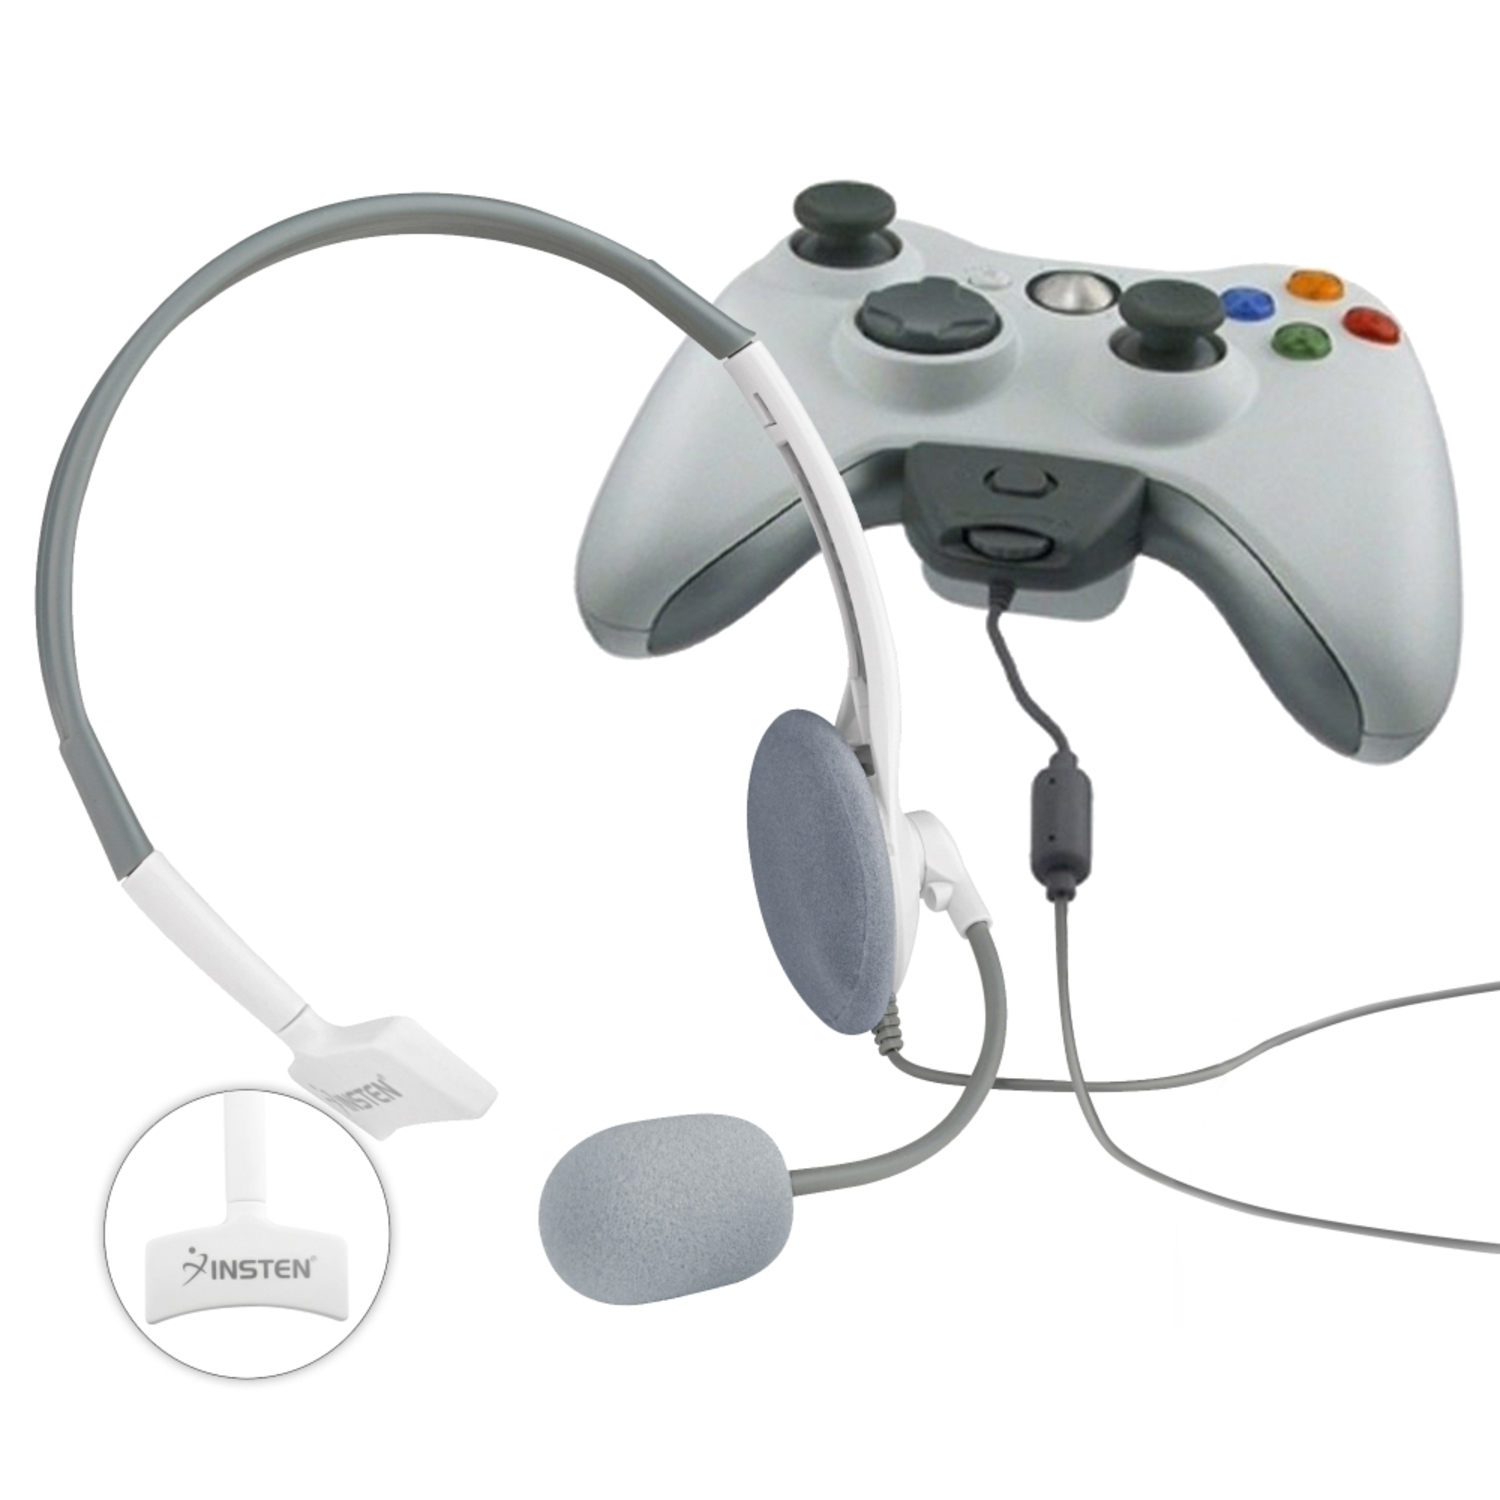 hight resolution of xbox 360 chatpad wiring diagram